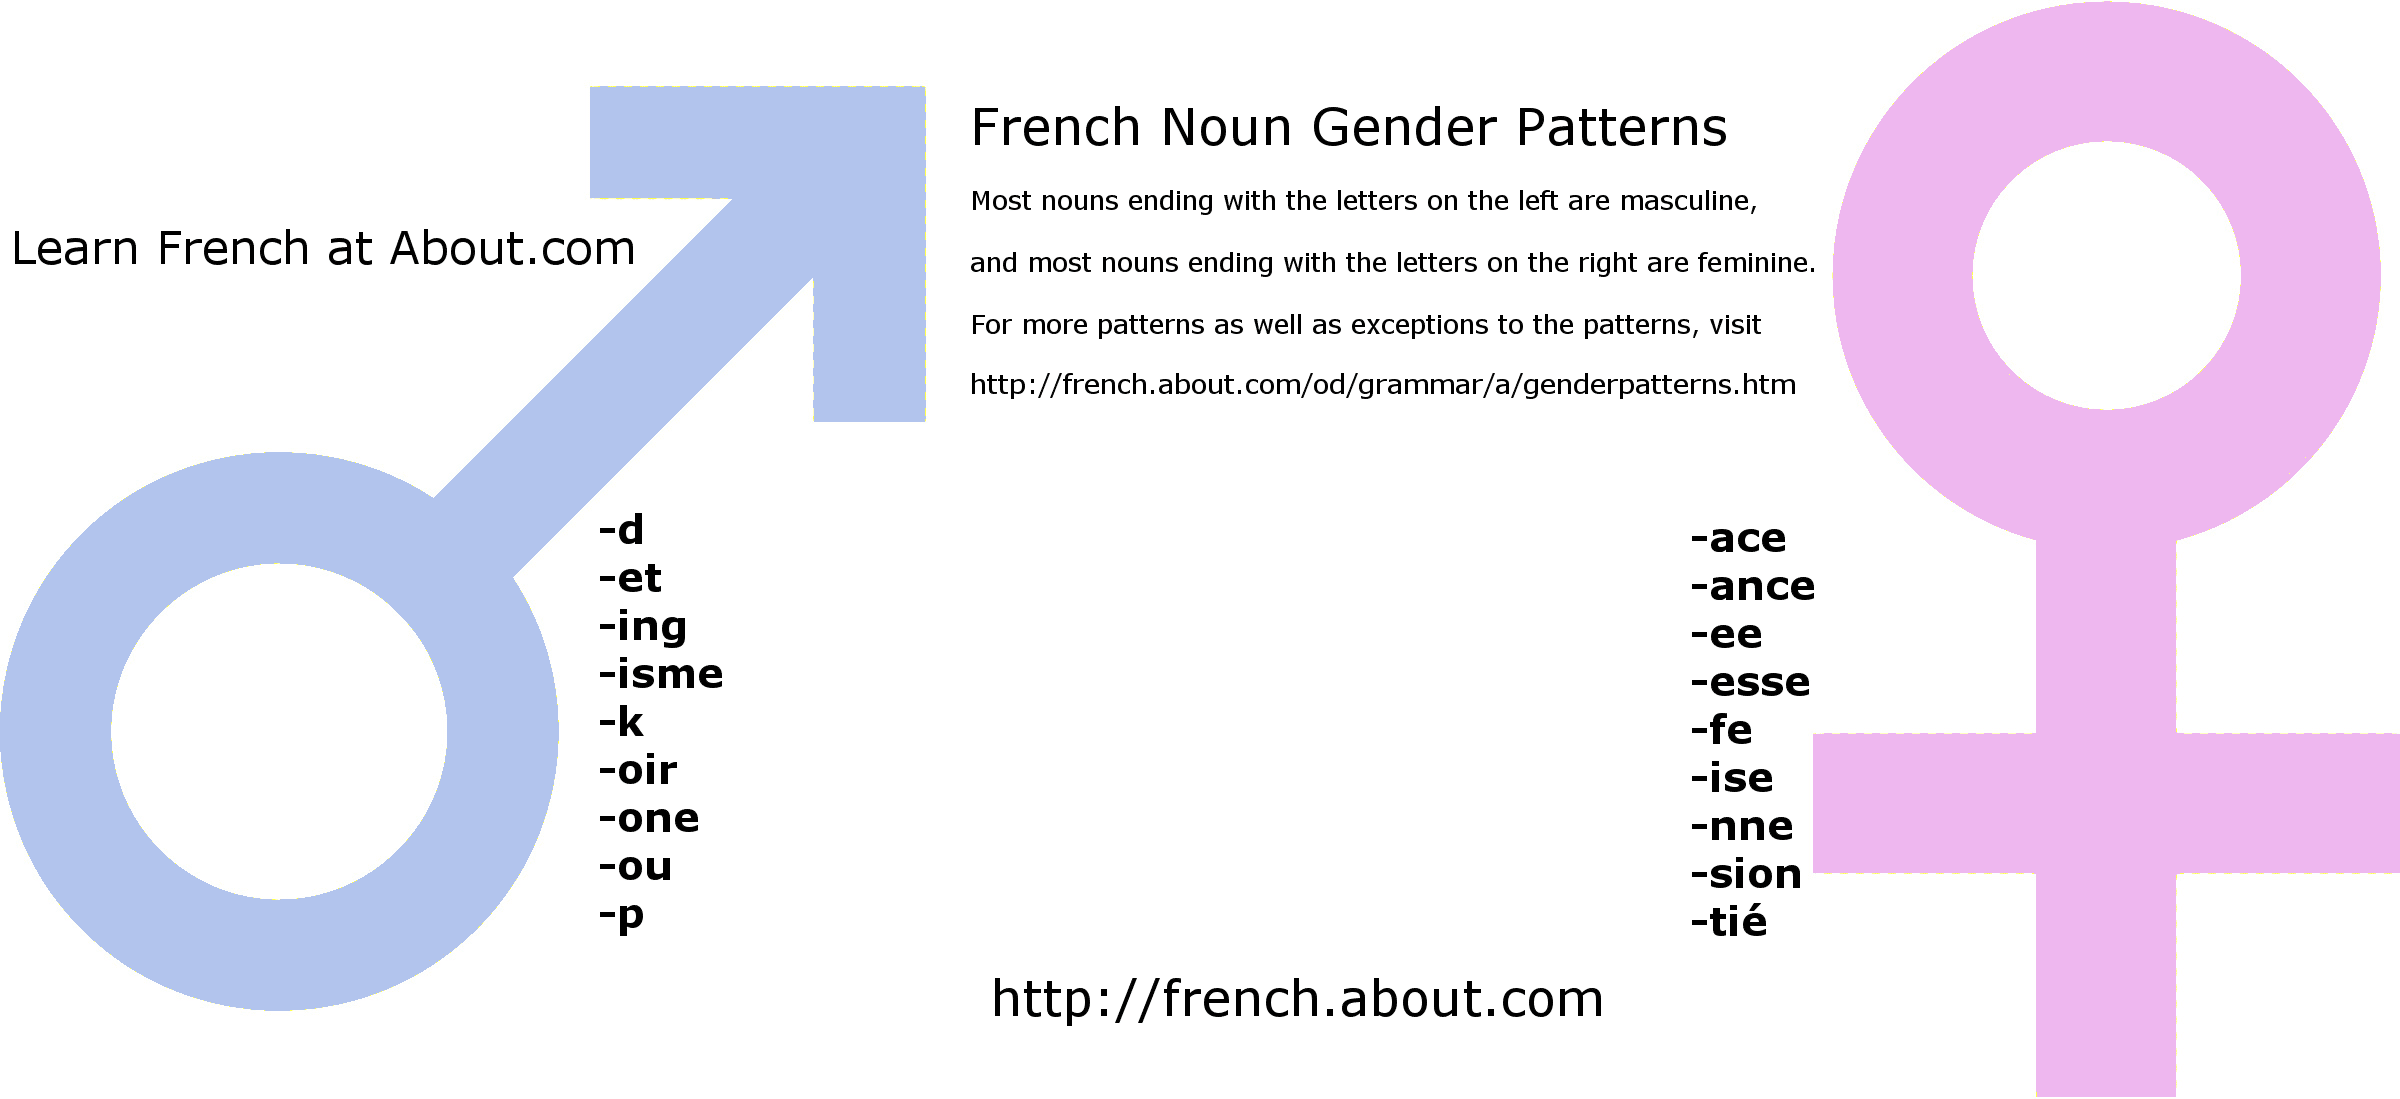 Need To Know The Gender Of A French Noun Its Ending Is A